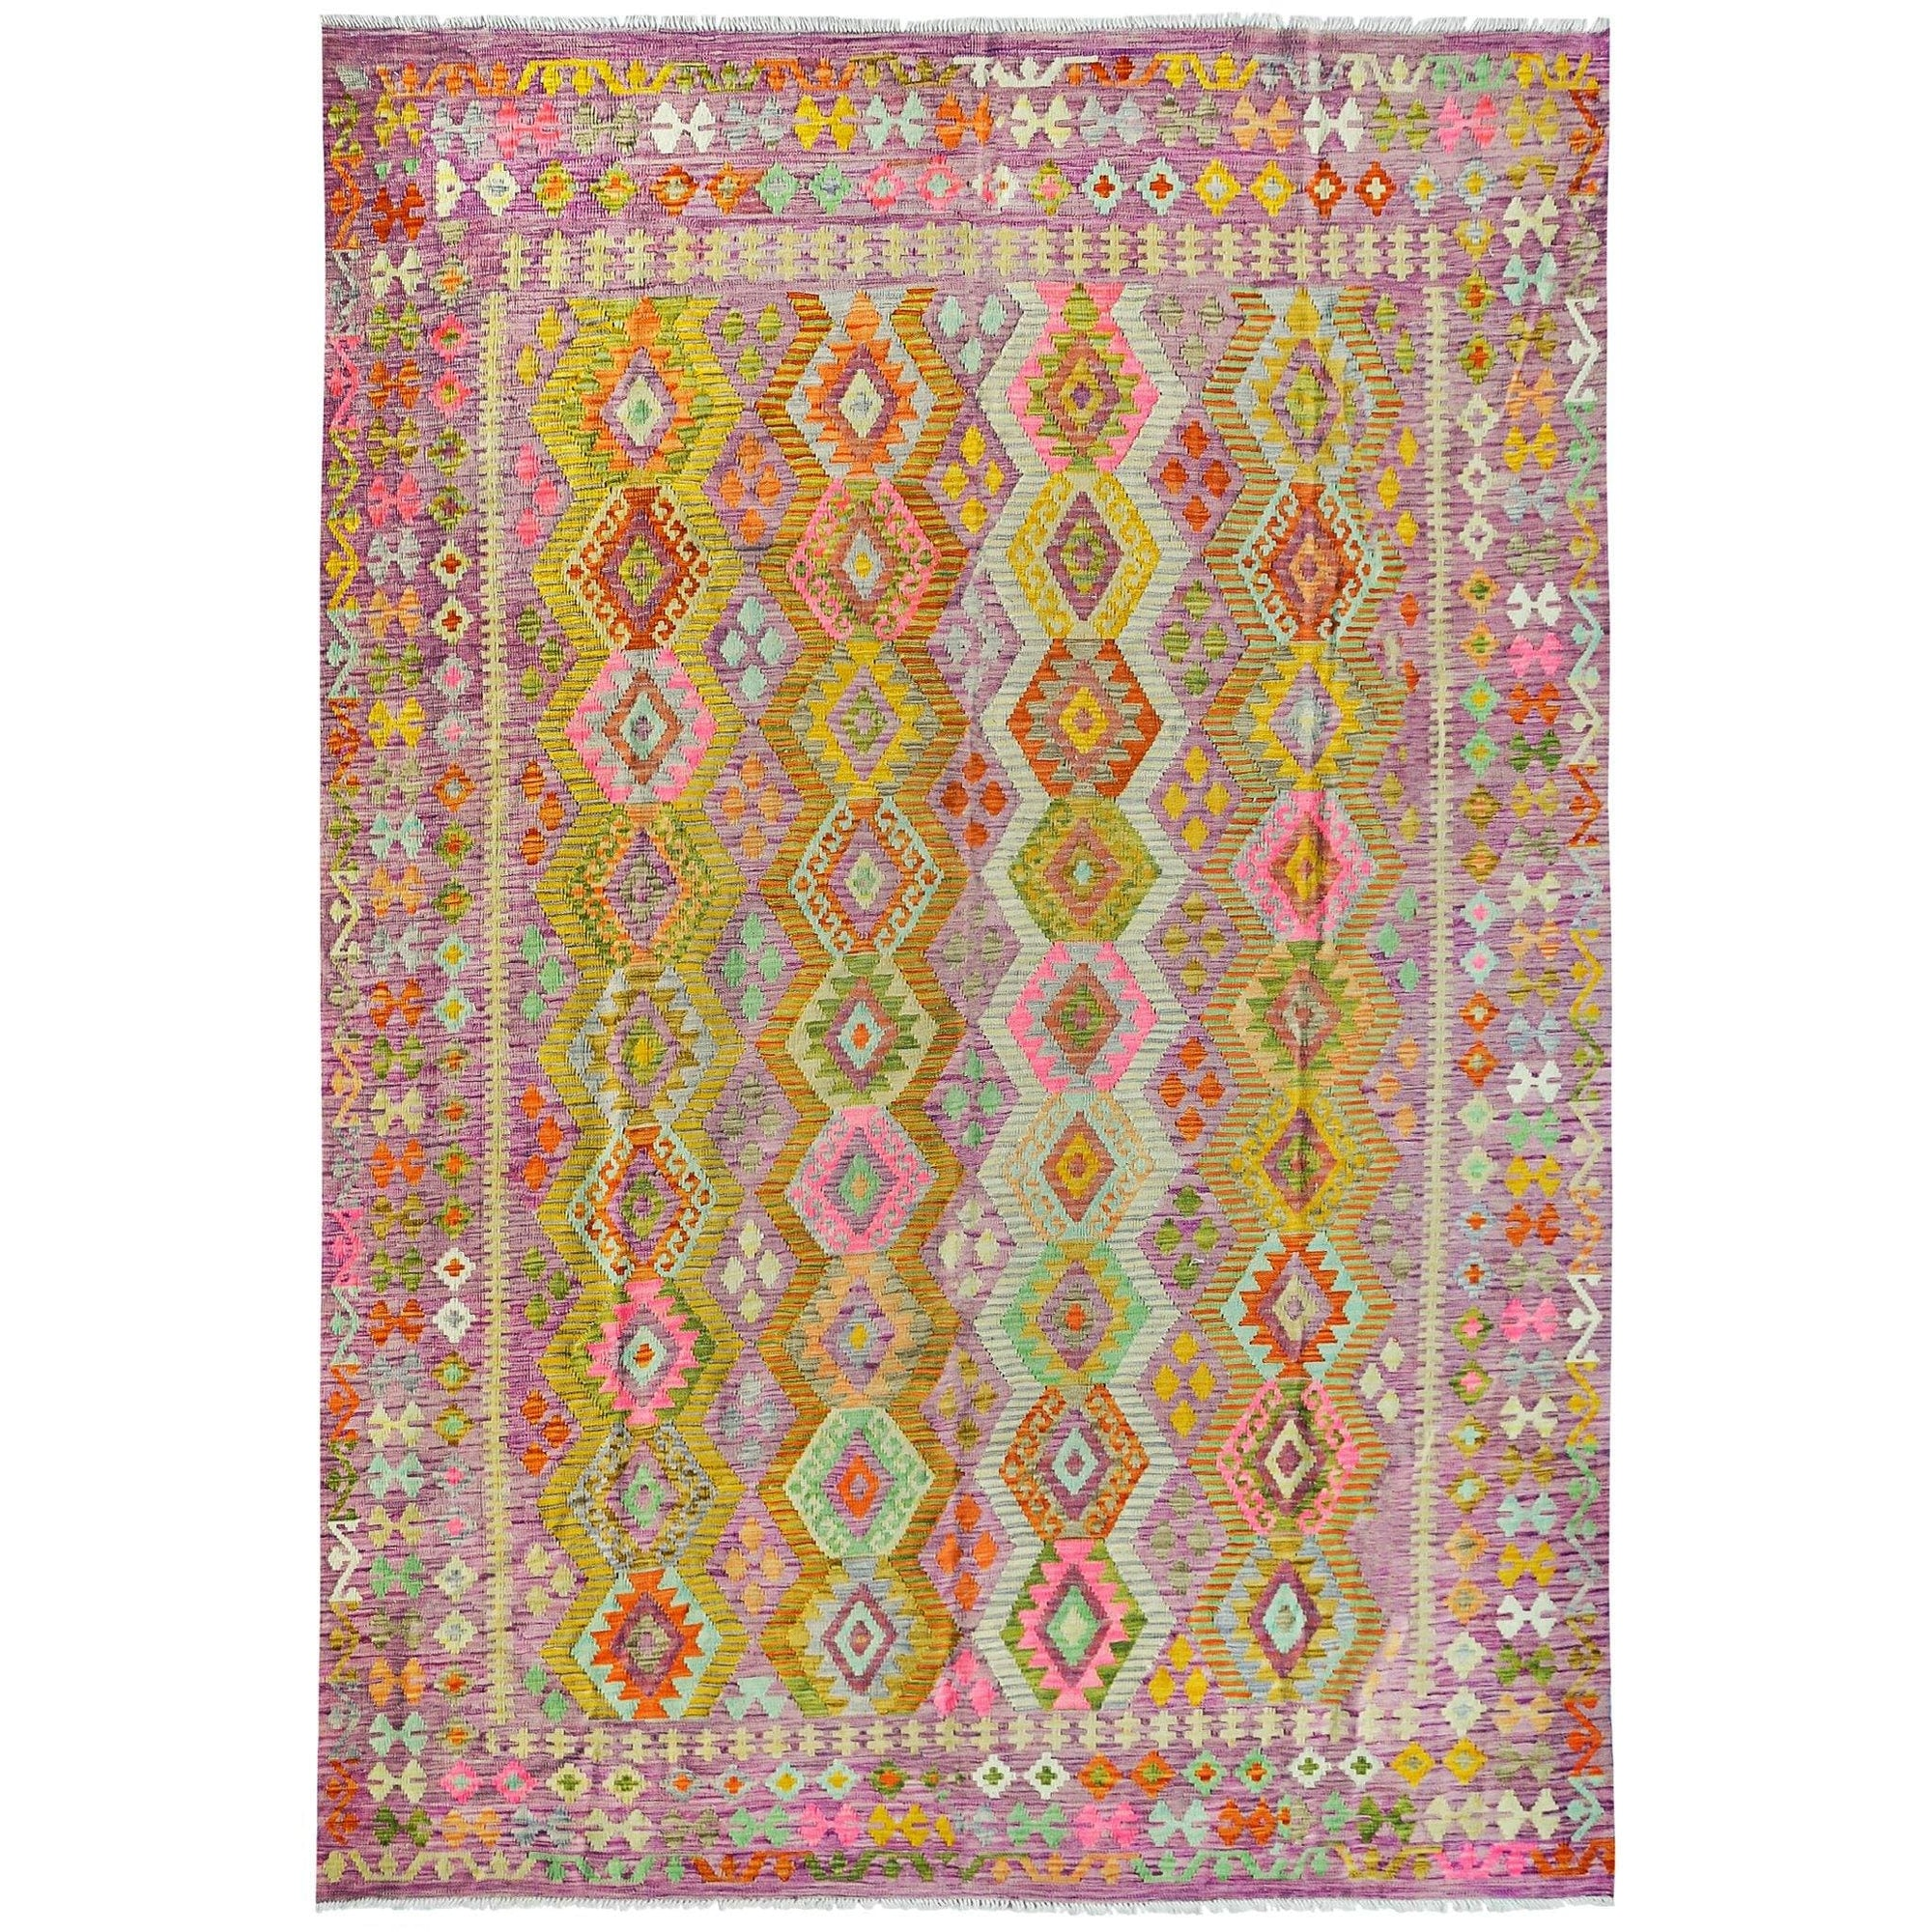 Extra Large Modern Hand-woven Wool Chobi Kilim Rug 253cm x 346cm Persian-Rug | House-of-Haghi | NewMarket | Auckland | NZ | Handmade Persian Rugs | Hand Knotted Persian Rugs